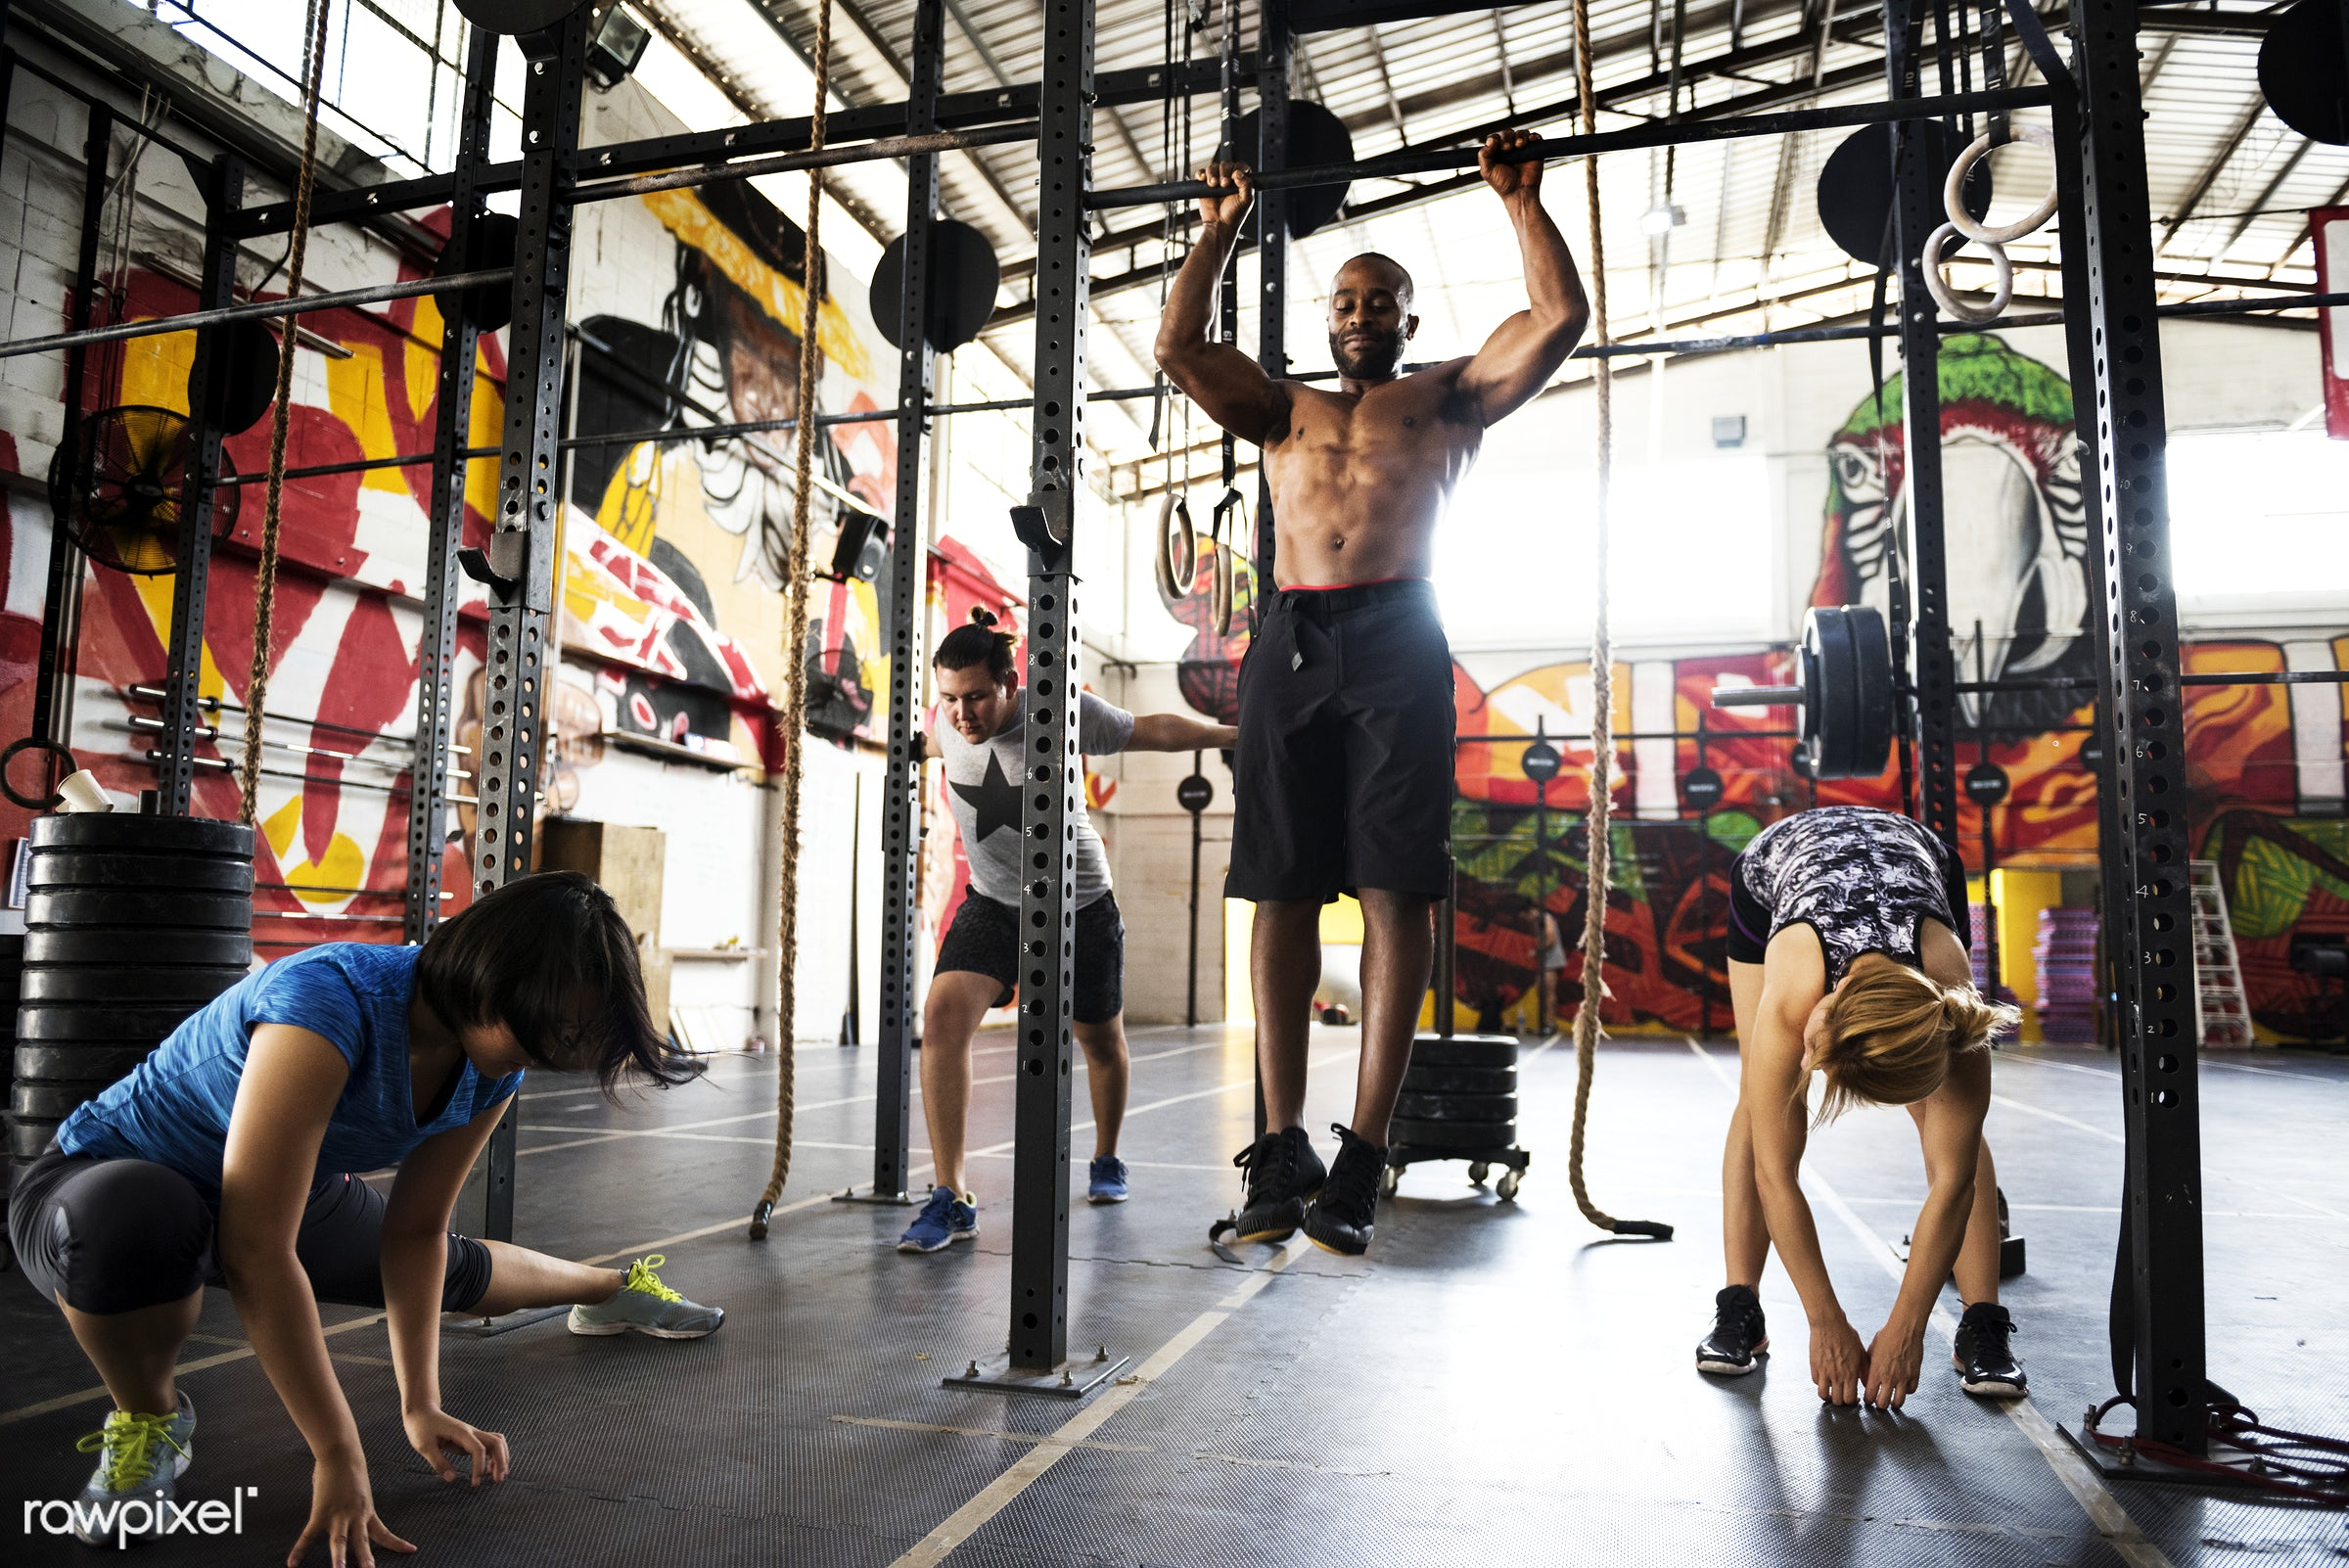 Crossfit group at the gym - active, activity, african descent, asian ethnicity, athlete, athletic, body, buff, caucasian,...